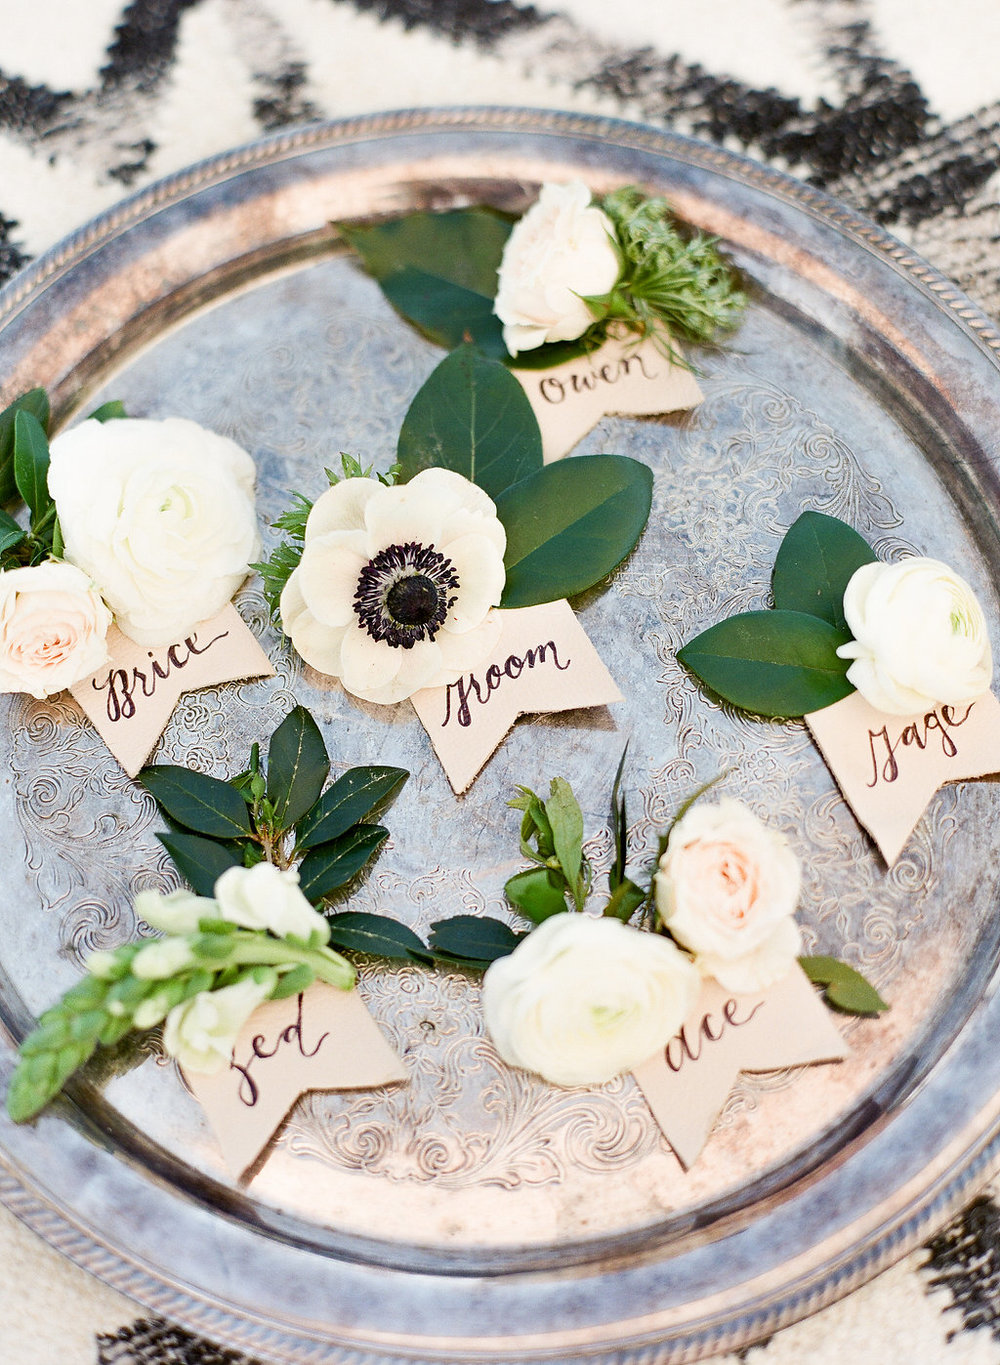 the-wyld-dock-bar-wedding-ivory-and-beau-savannah-wedding-planner-savannah-event-designer-savannah-wedding-florist-anemone-boutonniere-rustic-outdoor-wedding-inspiration-calligraphy-savannah-georgia-bridal-boutique.jpg